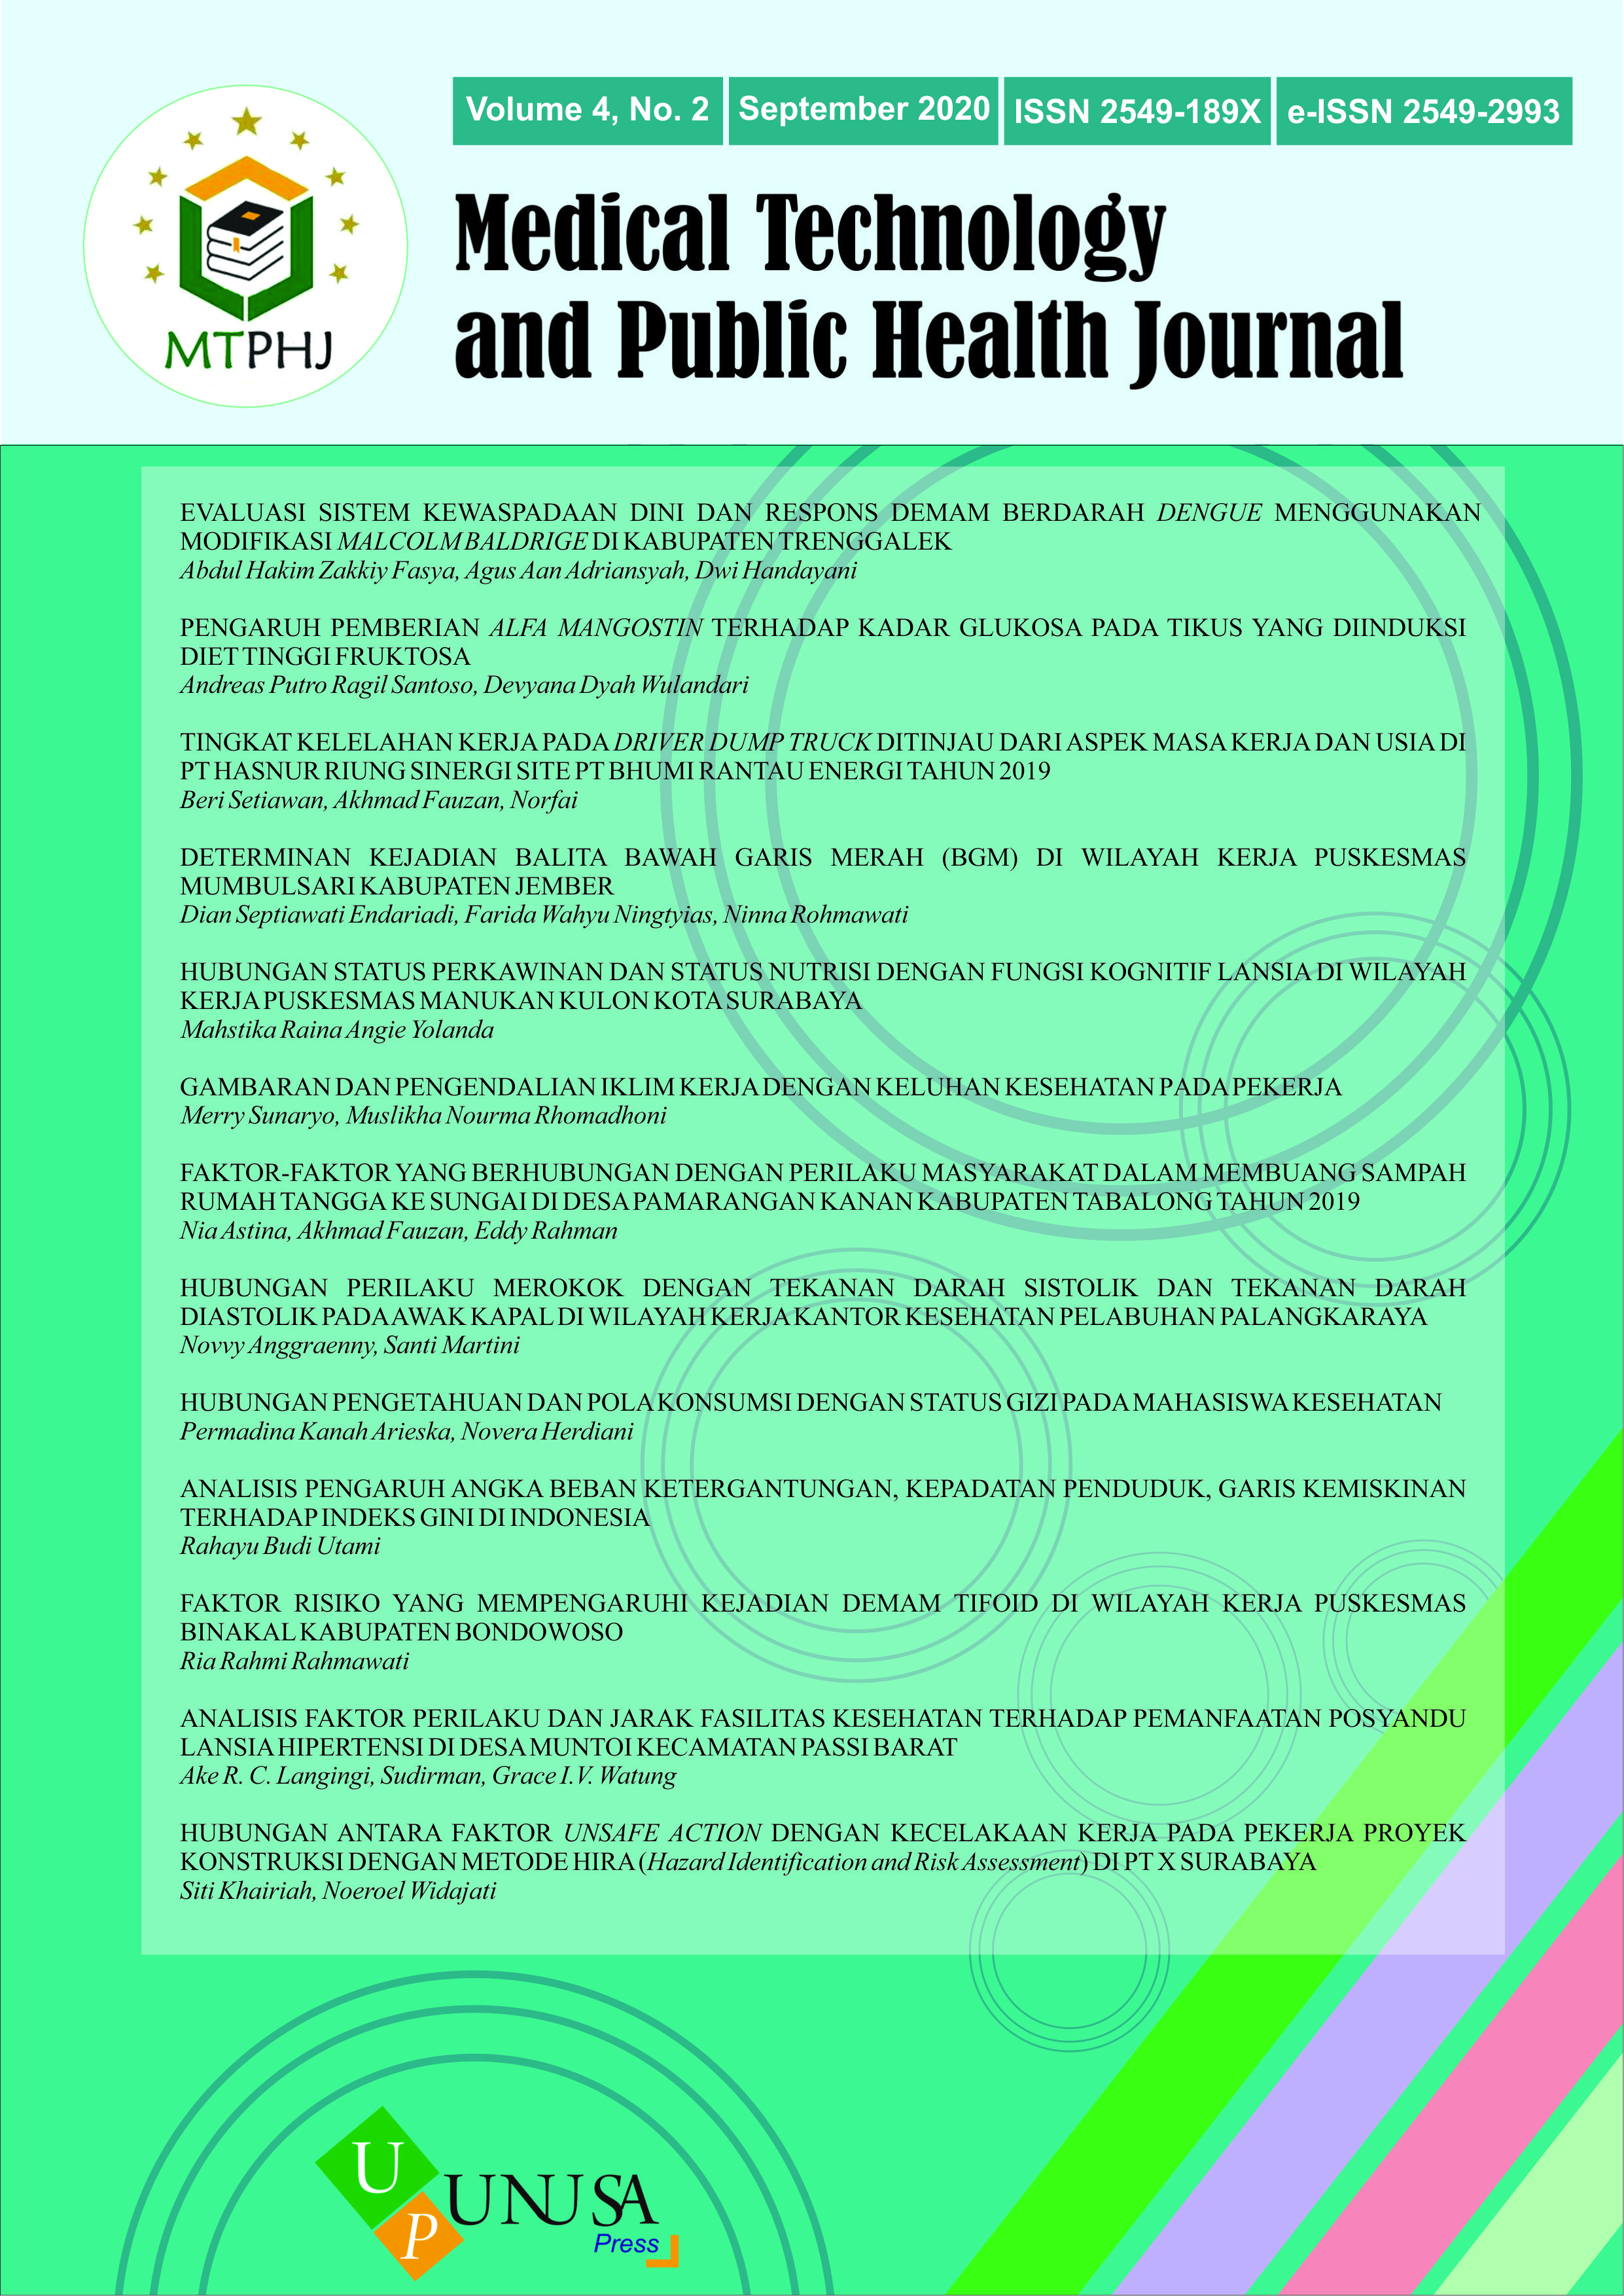 View Vol. 4 No. 2 (2020): Medical Technology and Public Health Journal September 2020